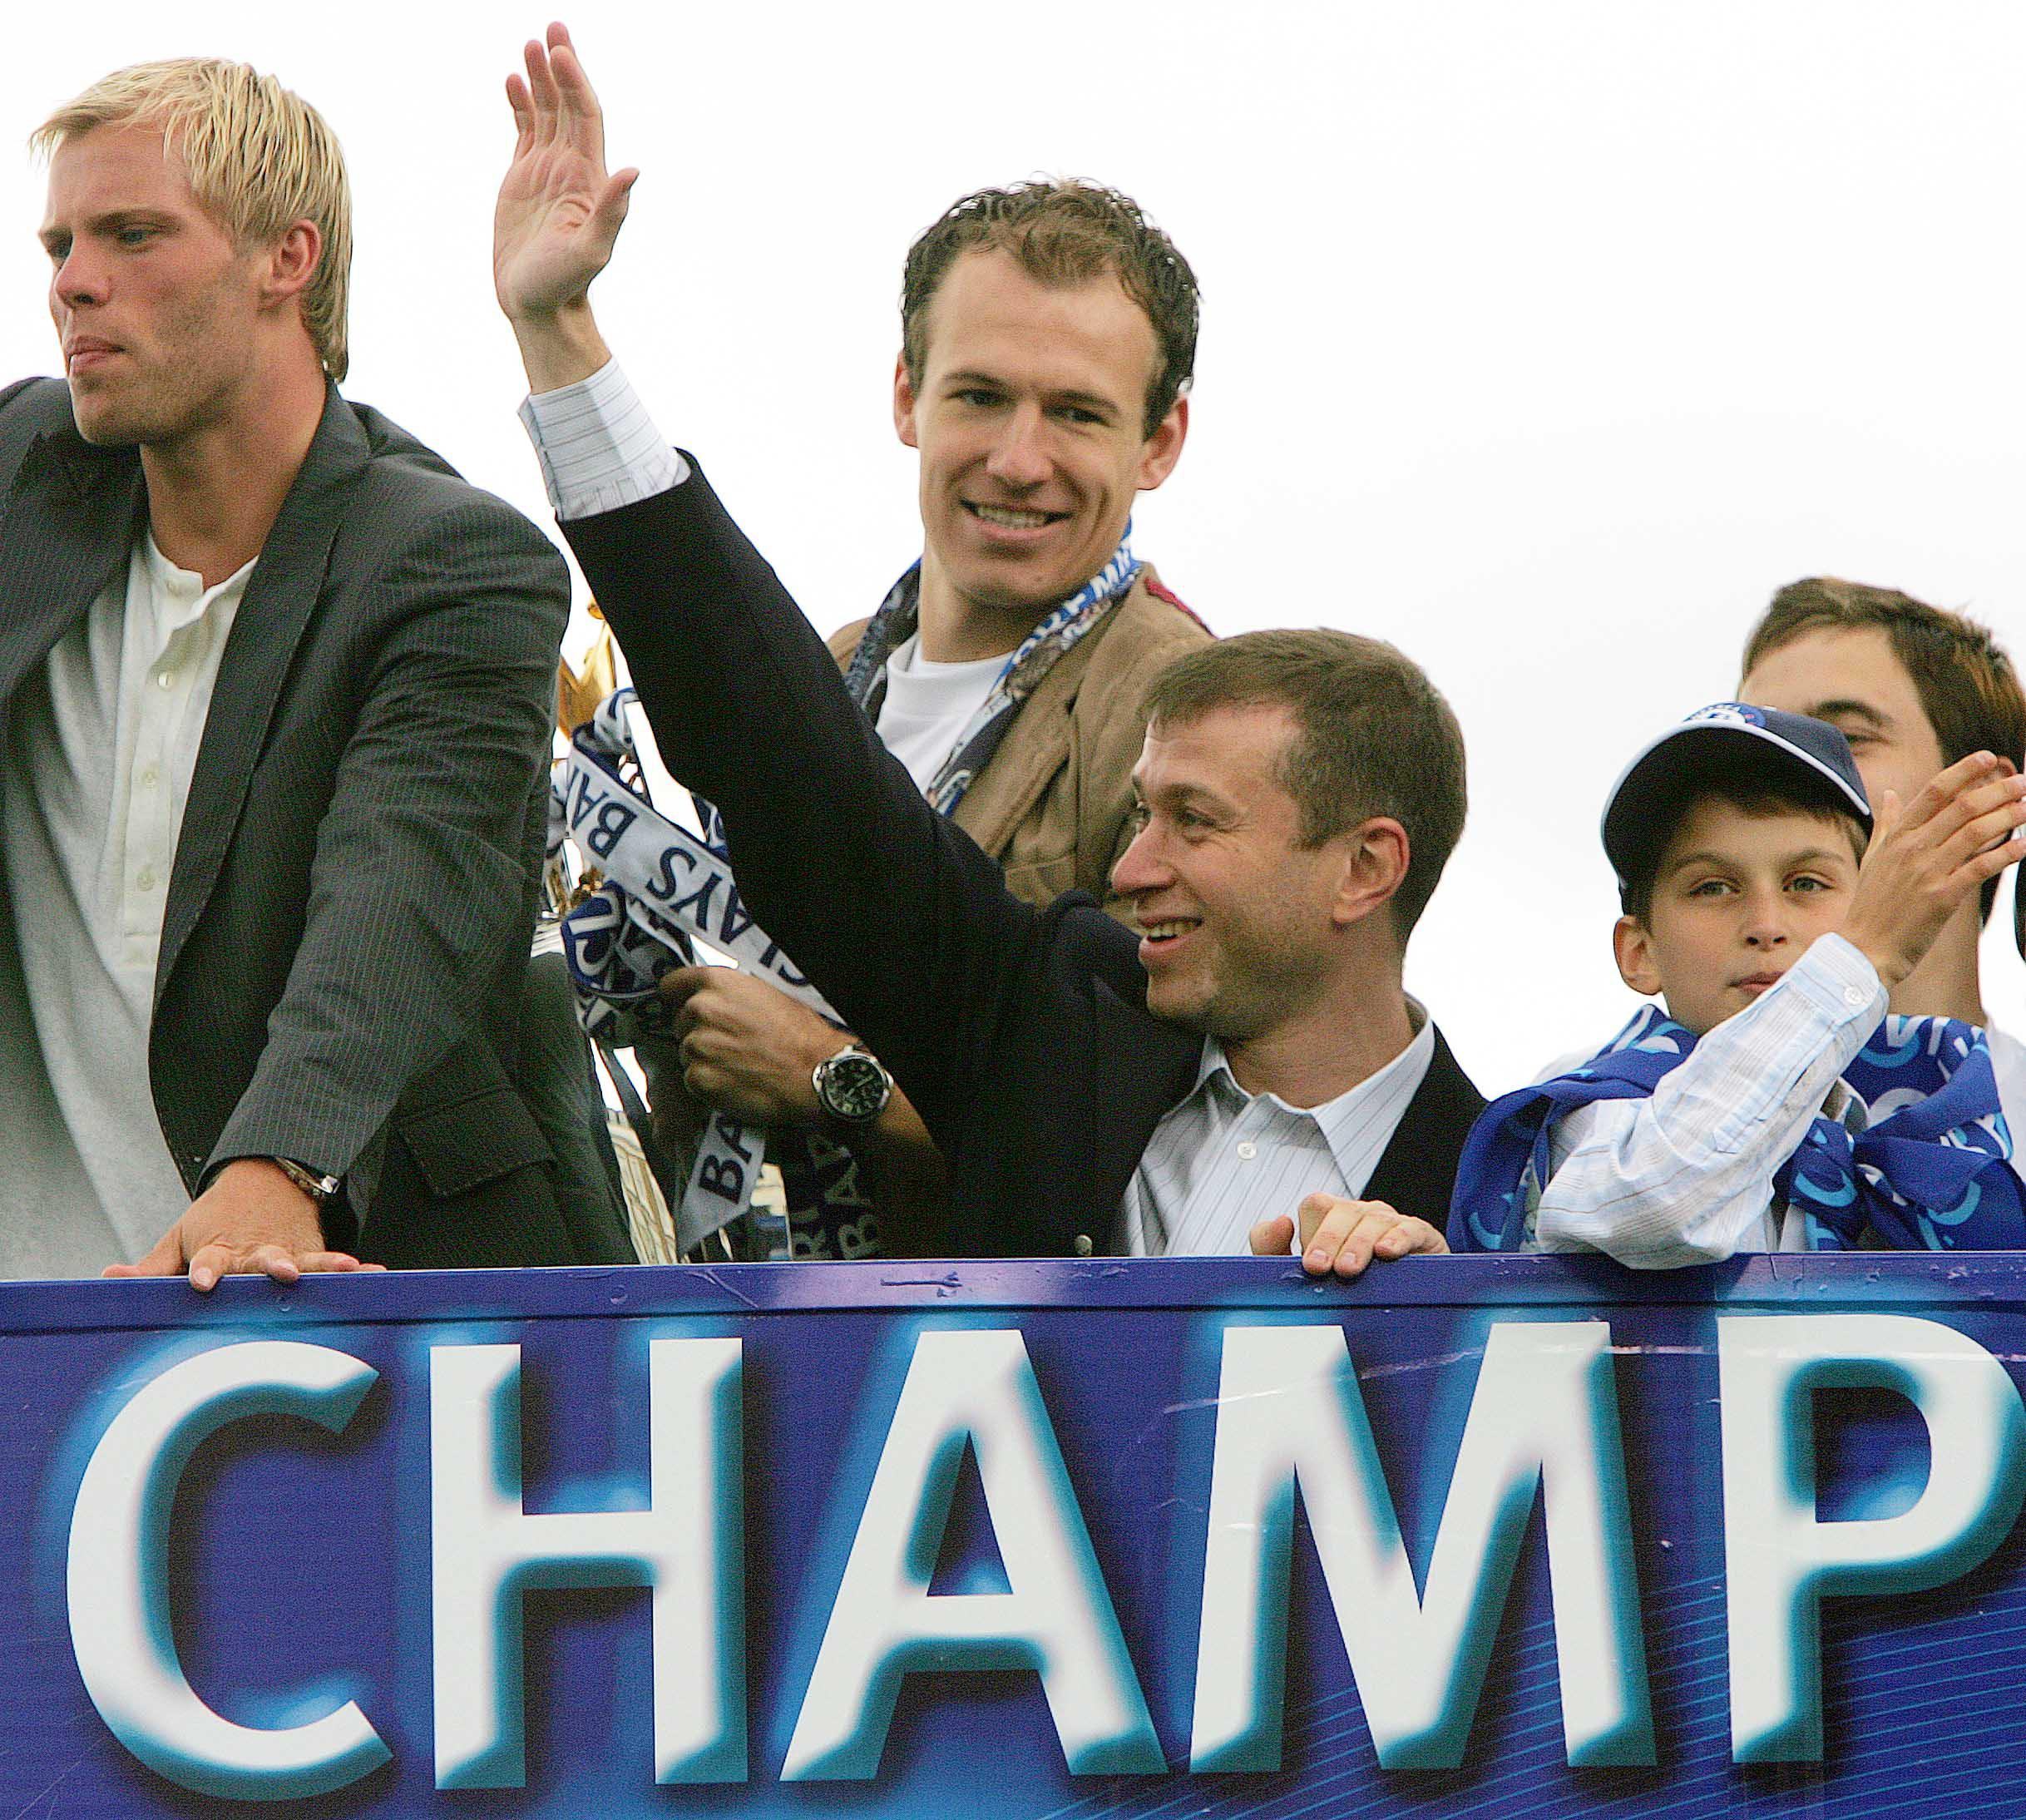 Roman, give us a wave. Chelsea owner celebrates 2005 title win